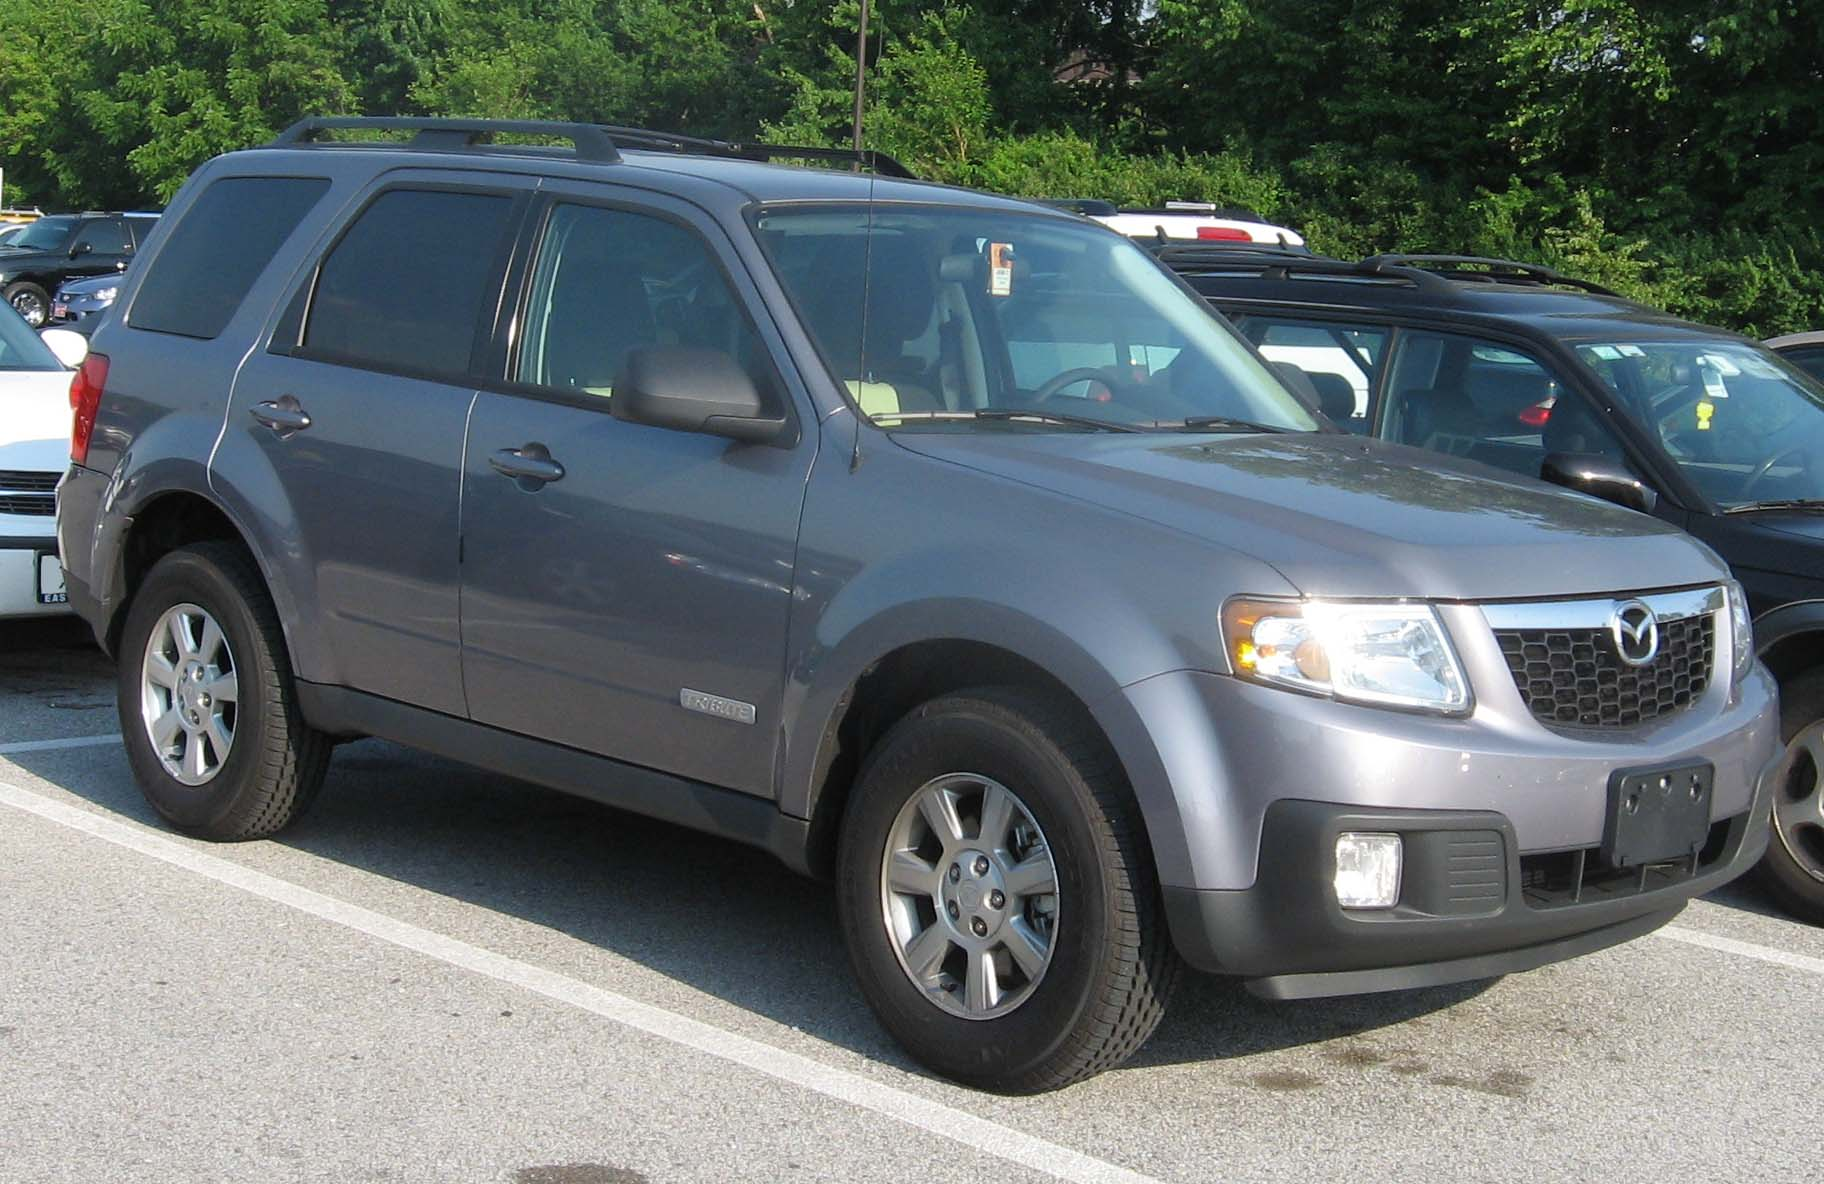 2008 mazda tribute - information and photos - zombiedrive